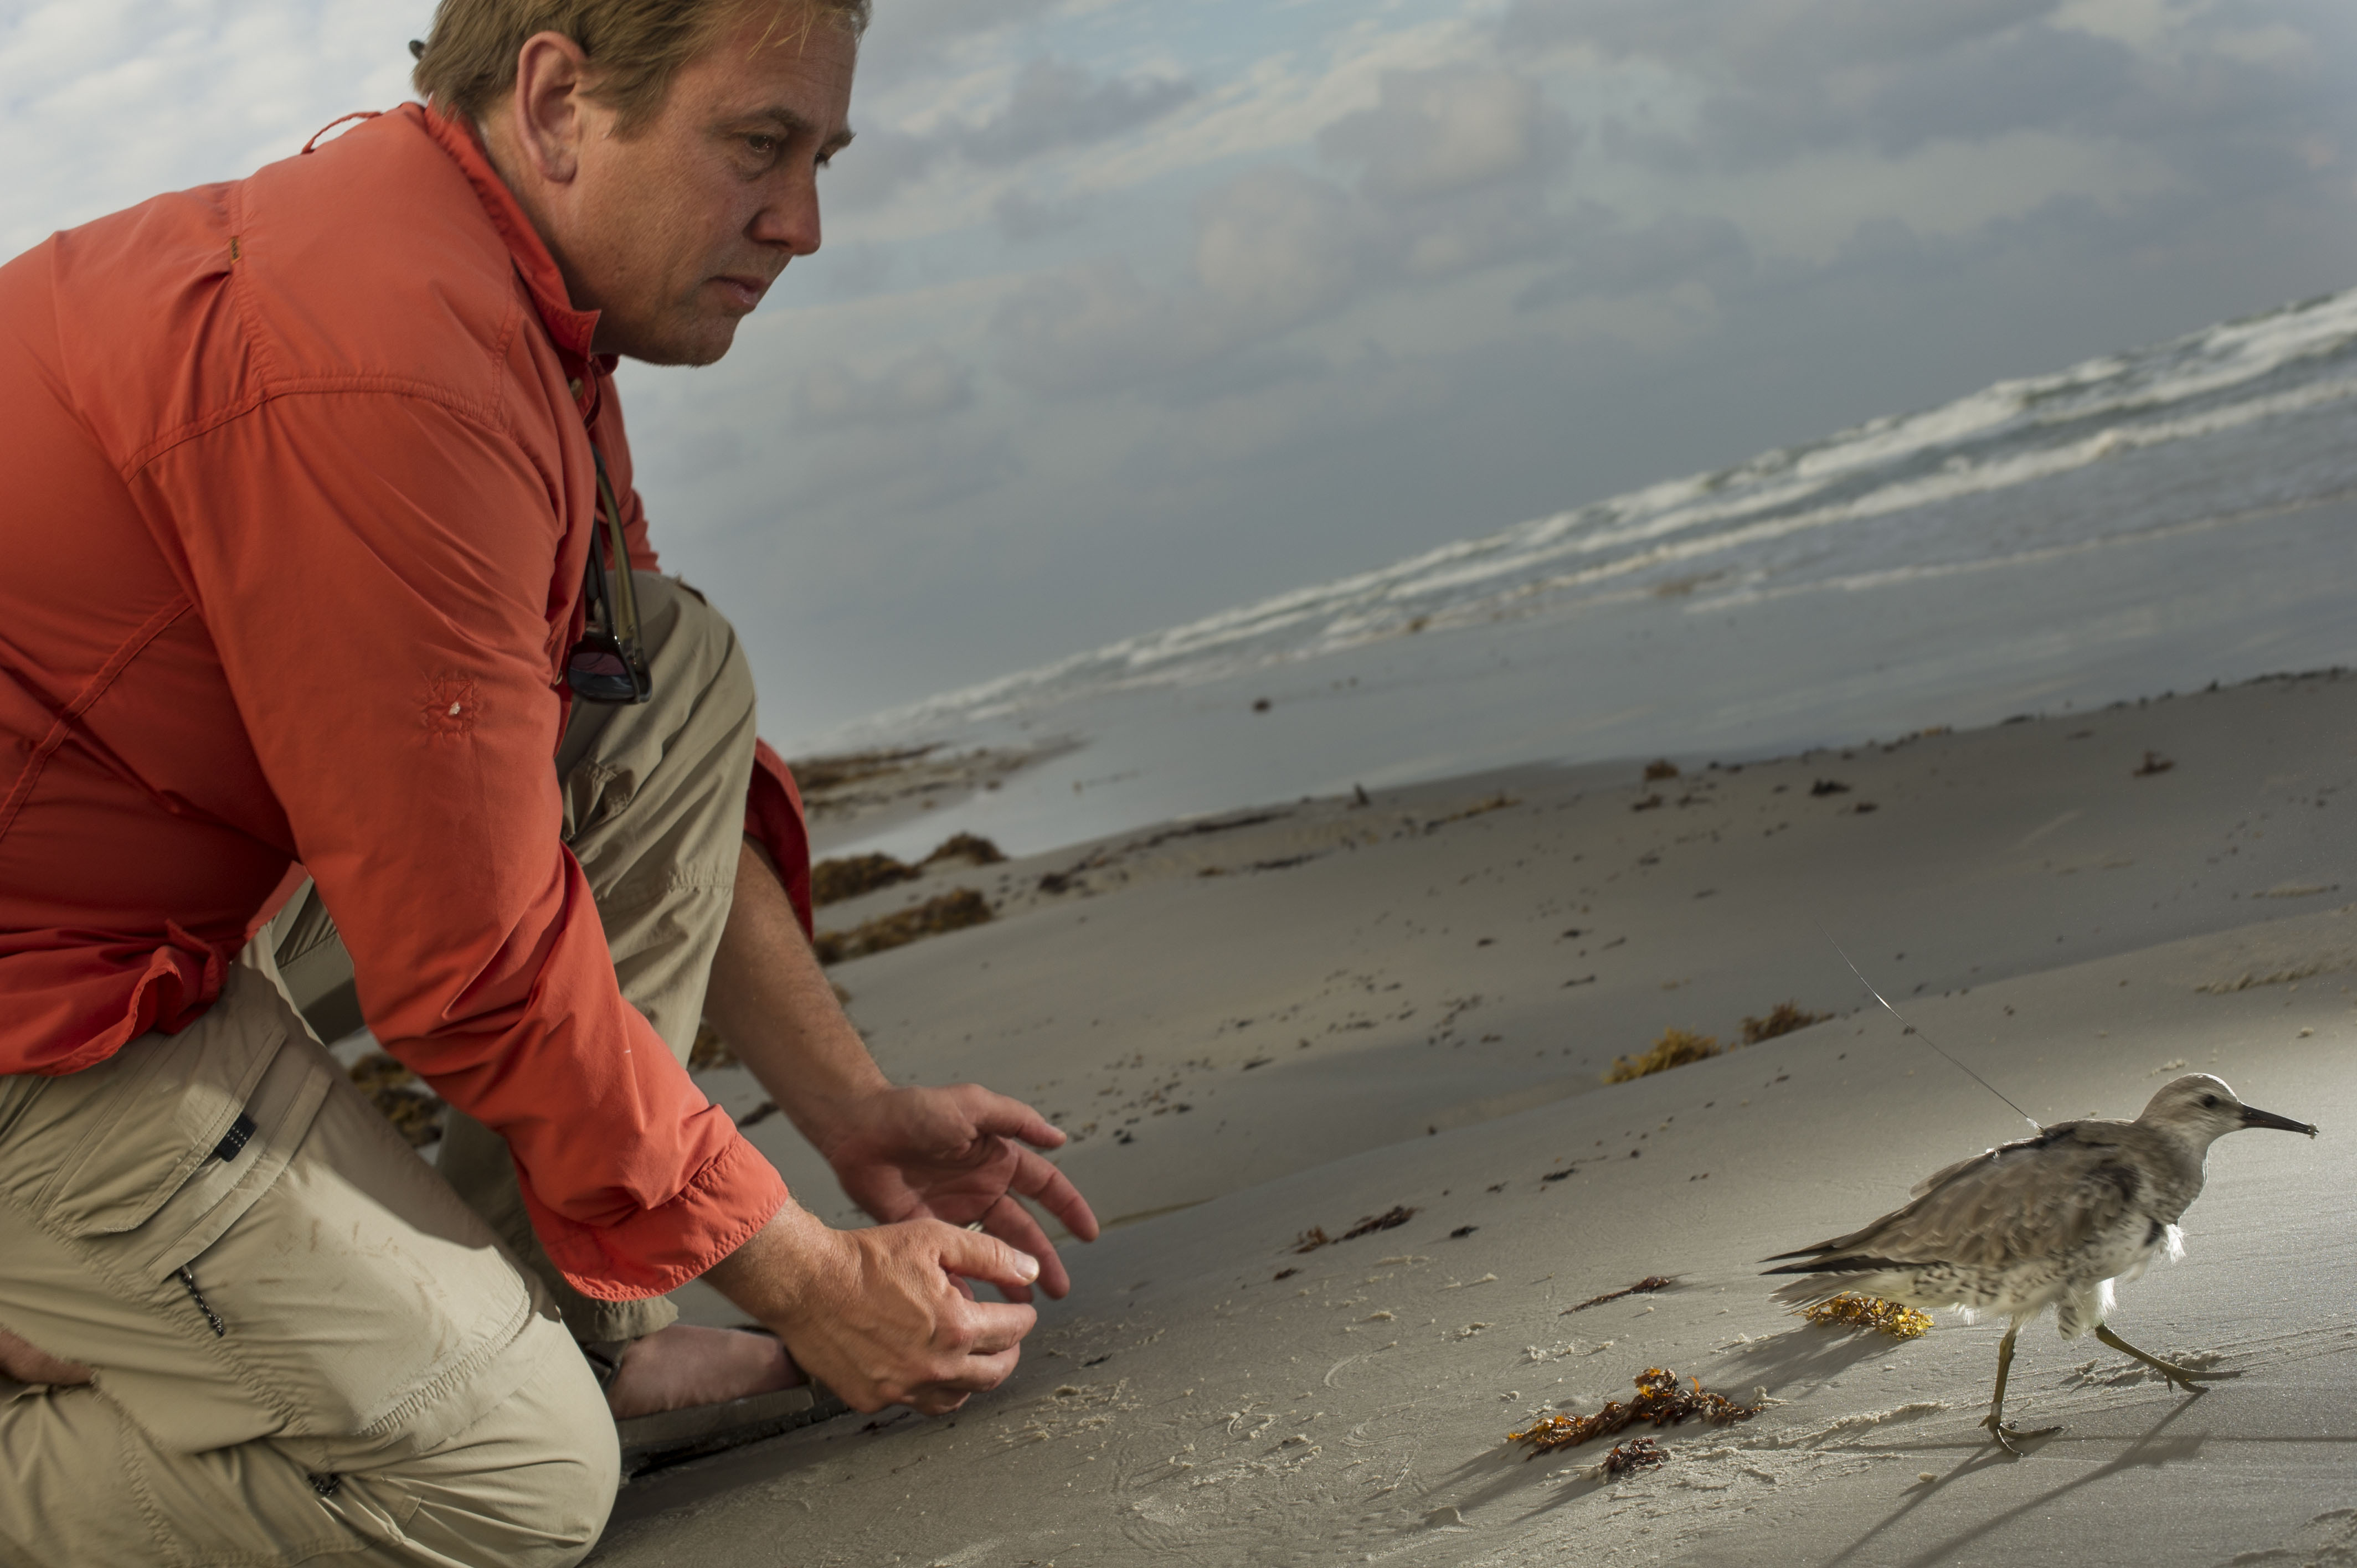 Smithsonian Migratory Bird Center director Pete Marra kneels on a beach after releasing a tagged bird that walks in front of him